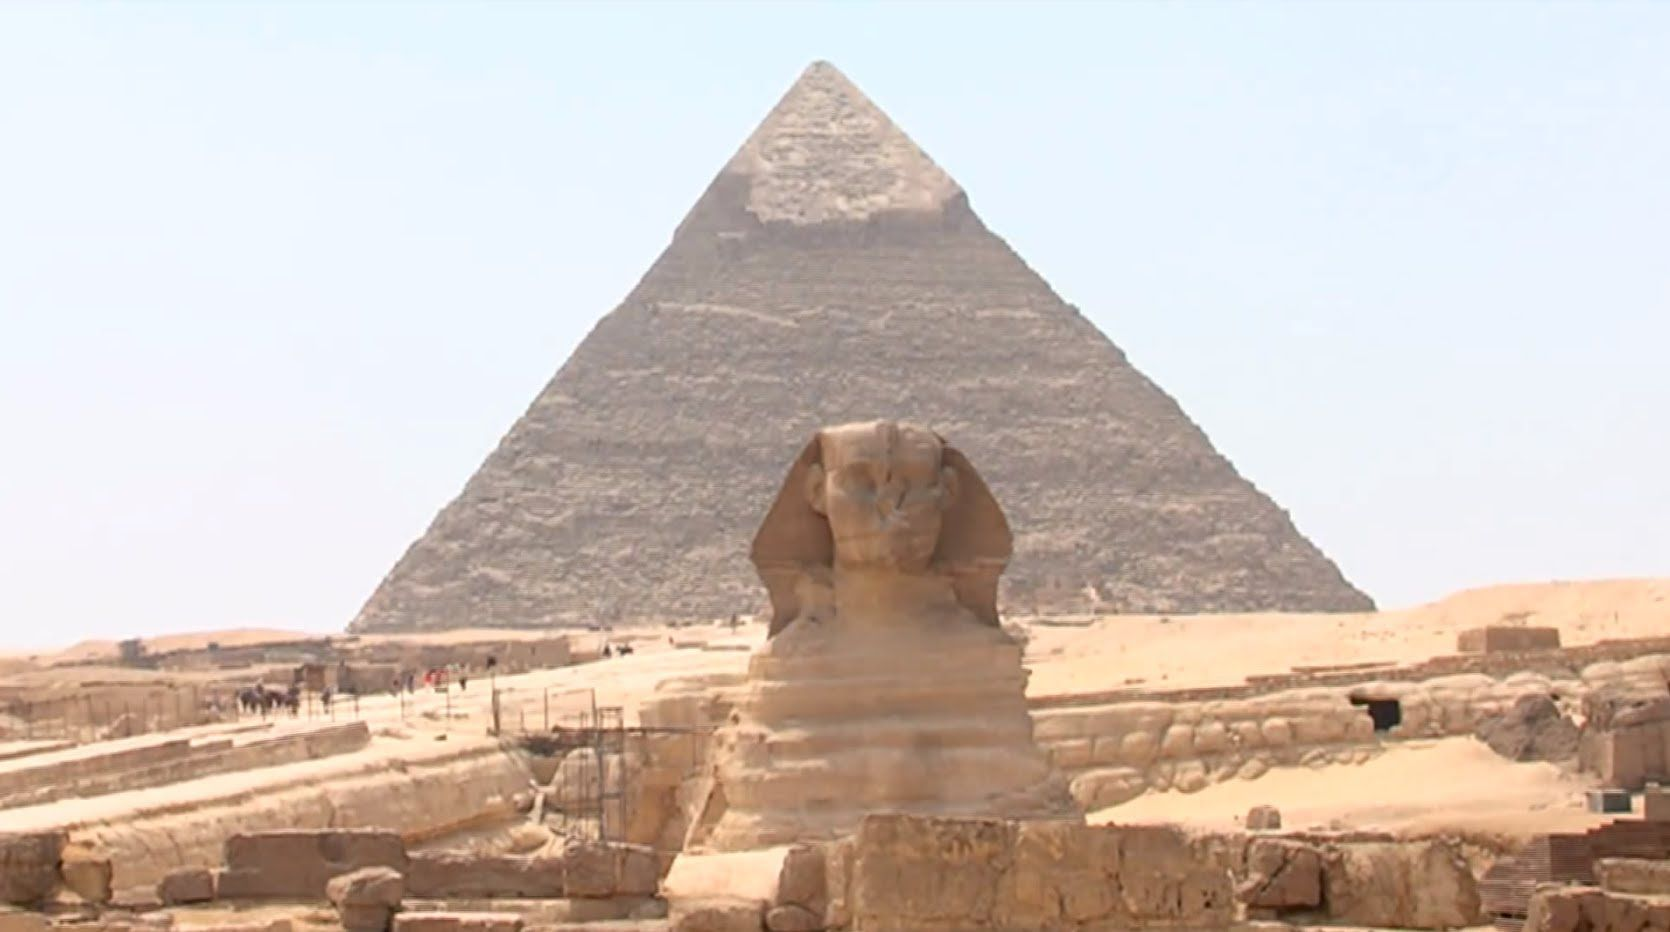 Egypt Is Famous For Its Ancient Civilization And Some Of